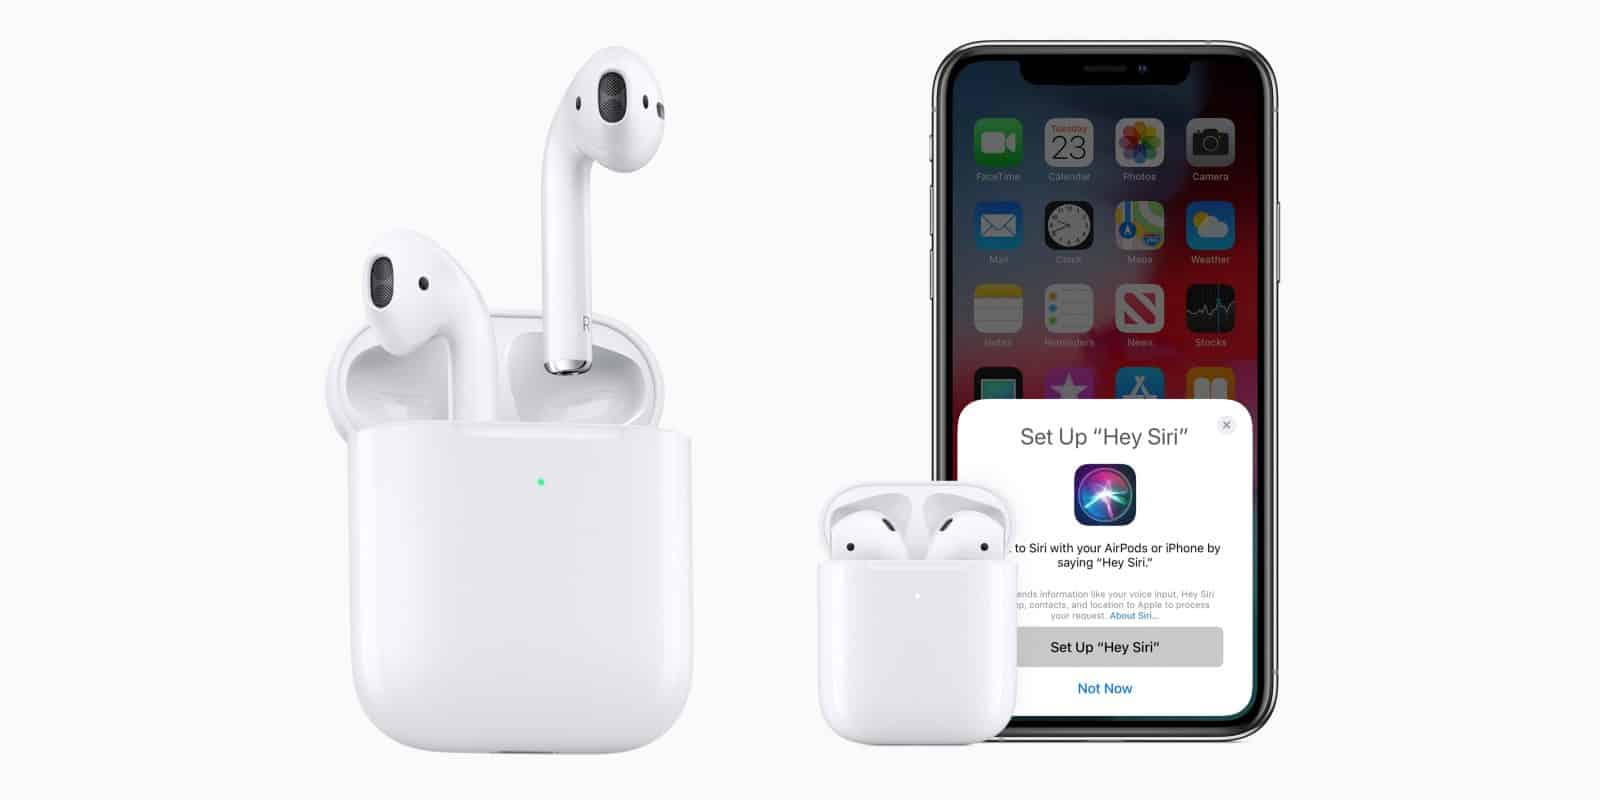 4b23c71f4c9 AirPods: News, Features, Reviews, Version 3 Rumors - 9to5Mac